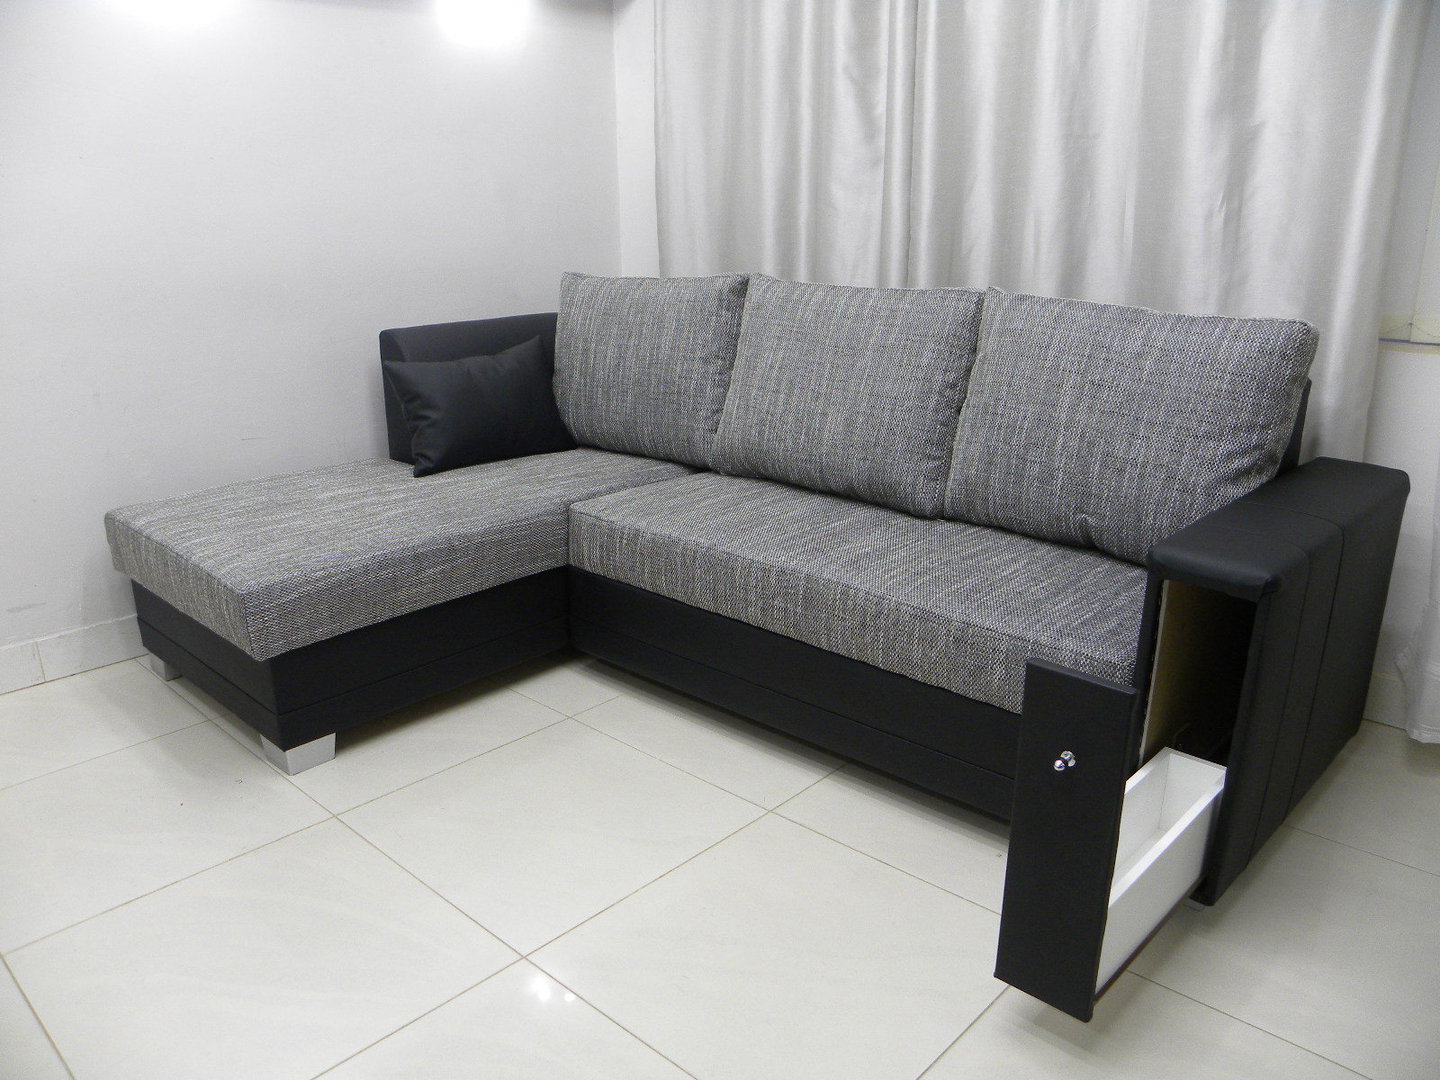 Corner Sofa Bed ''flame'' With A Single Chair Sofa Bed With Regard To Most Current Single Chair Sofa Bed (View 4 of 20)